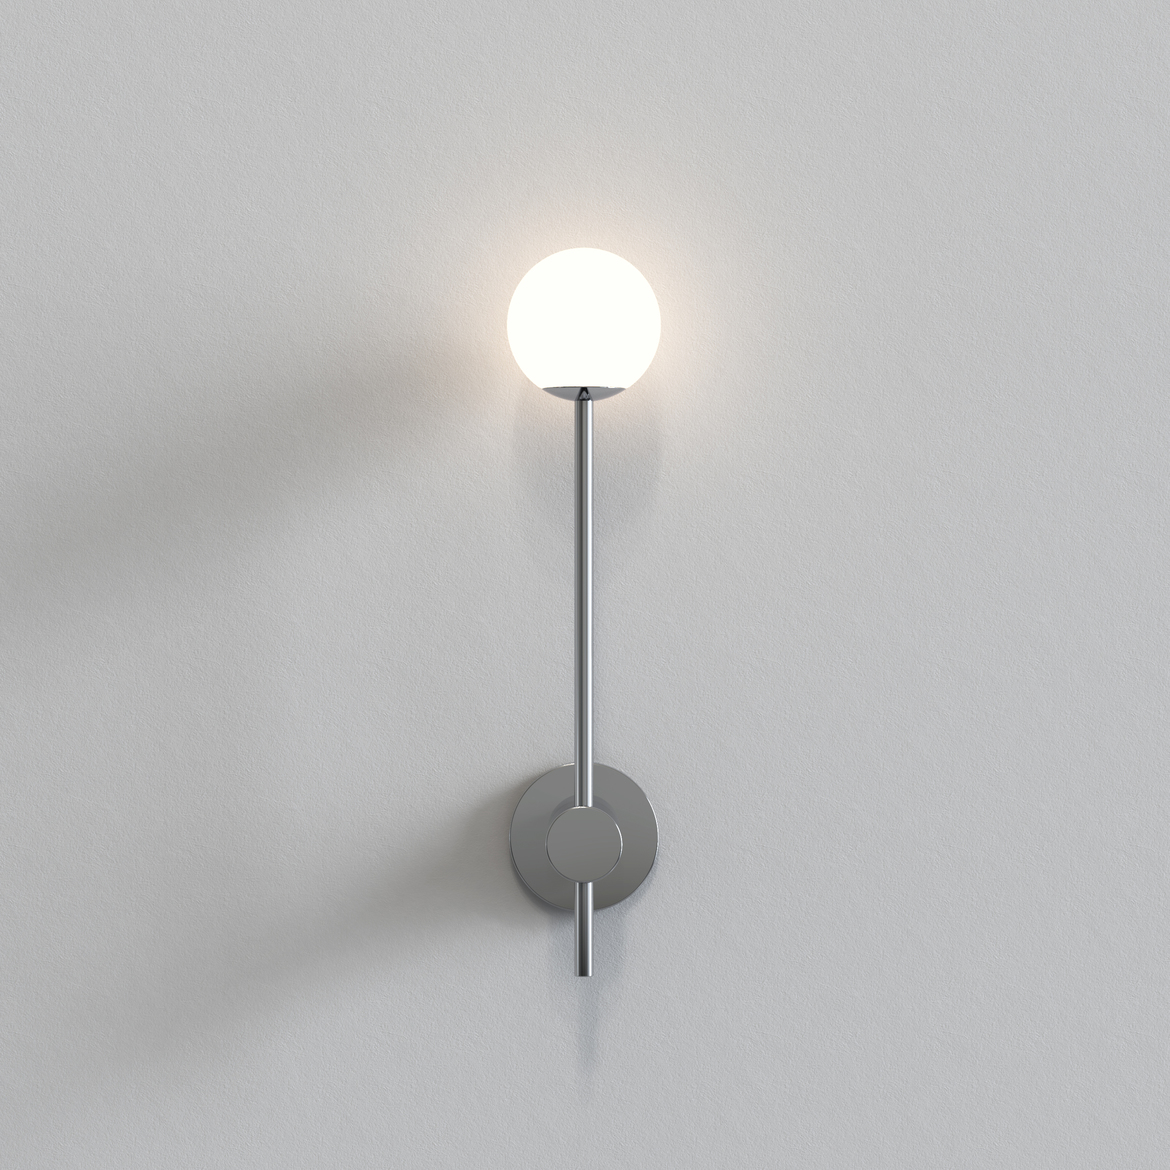 Astro Lighting 1424002 Orb Single Polished Chrome Wall Light